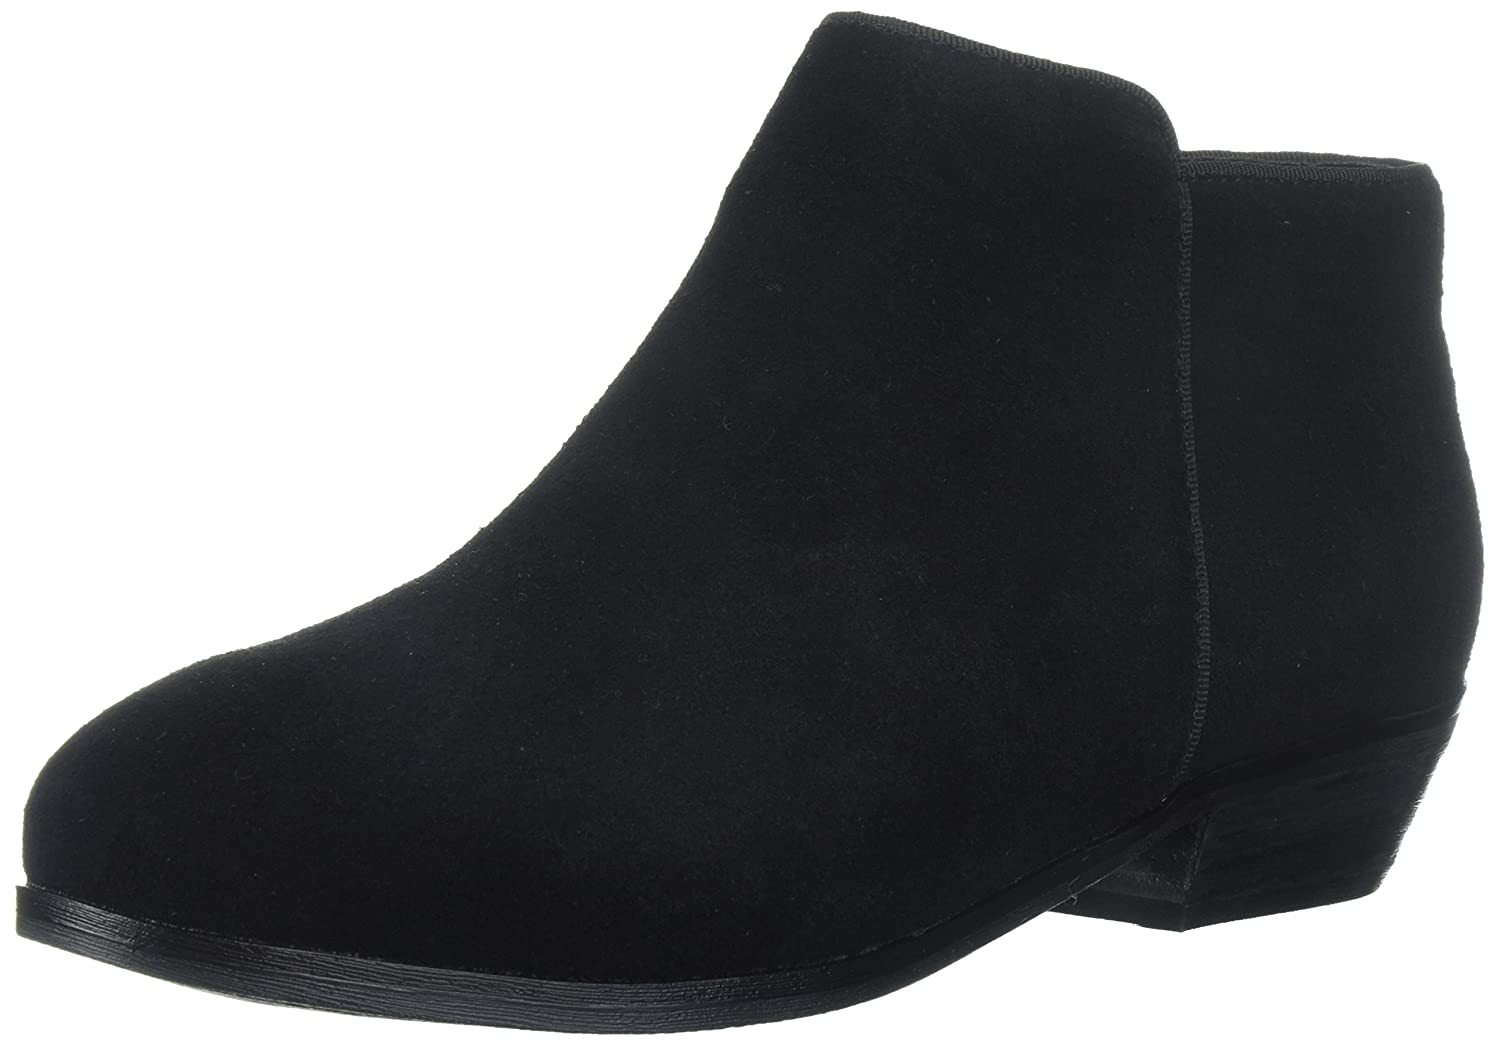 SoftWalk Women's Rocklin Loafer Flat, Black Suede, 8.0 2W US B00HQNG800 6.5 N US|Black Suede